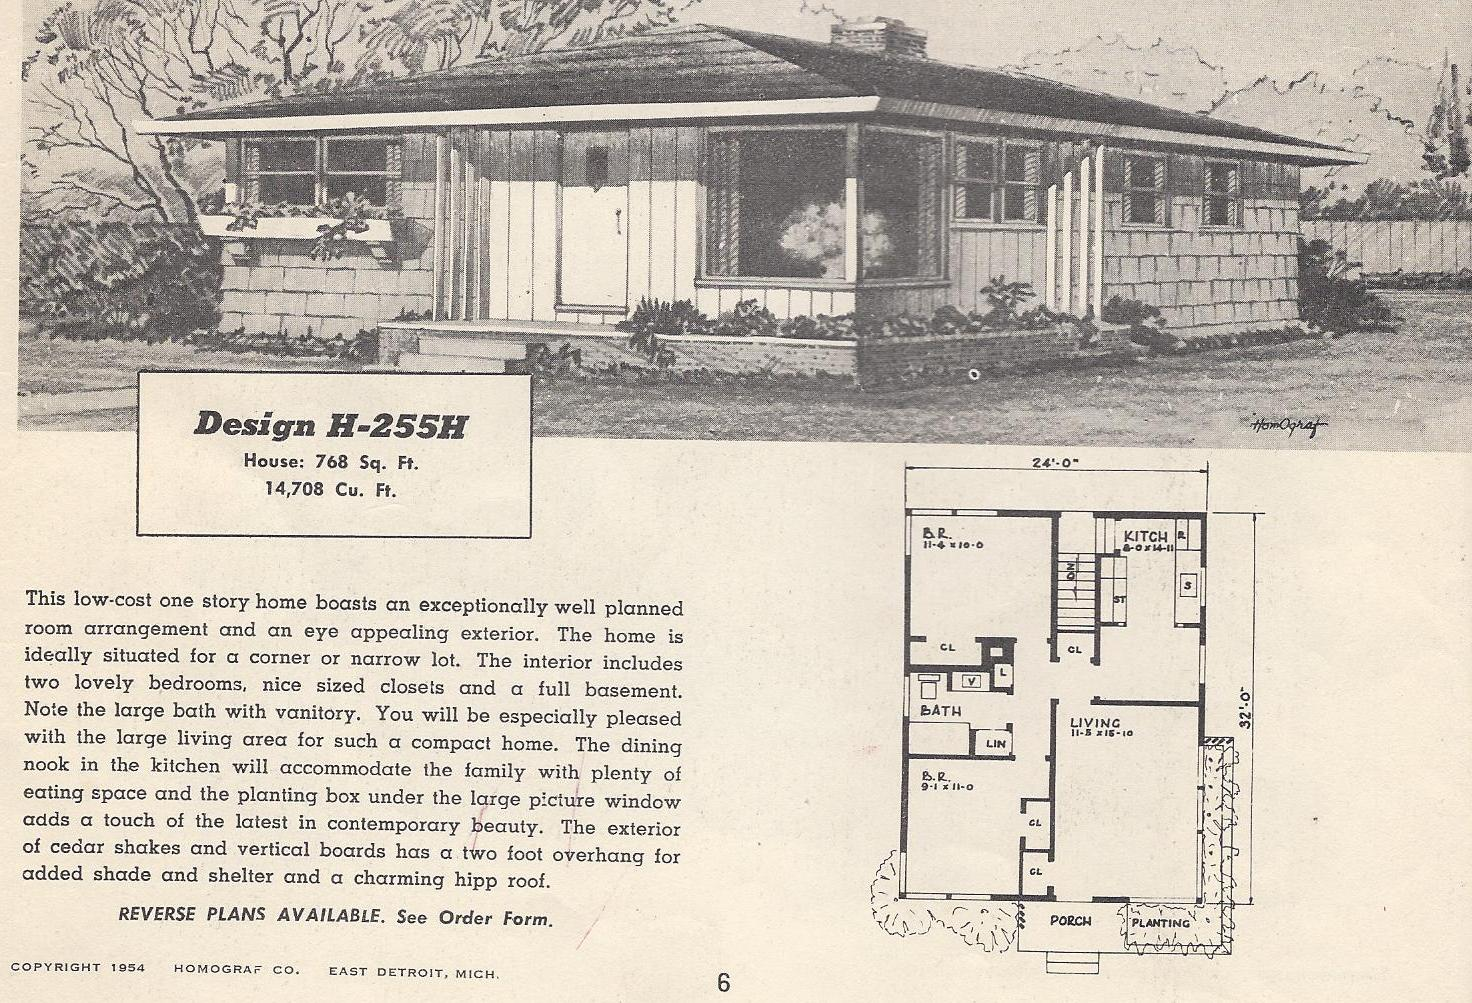 Vintage house plans 255h antique alter ego for Retro modern house plans